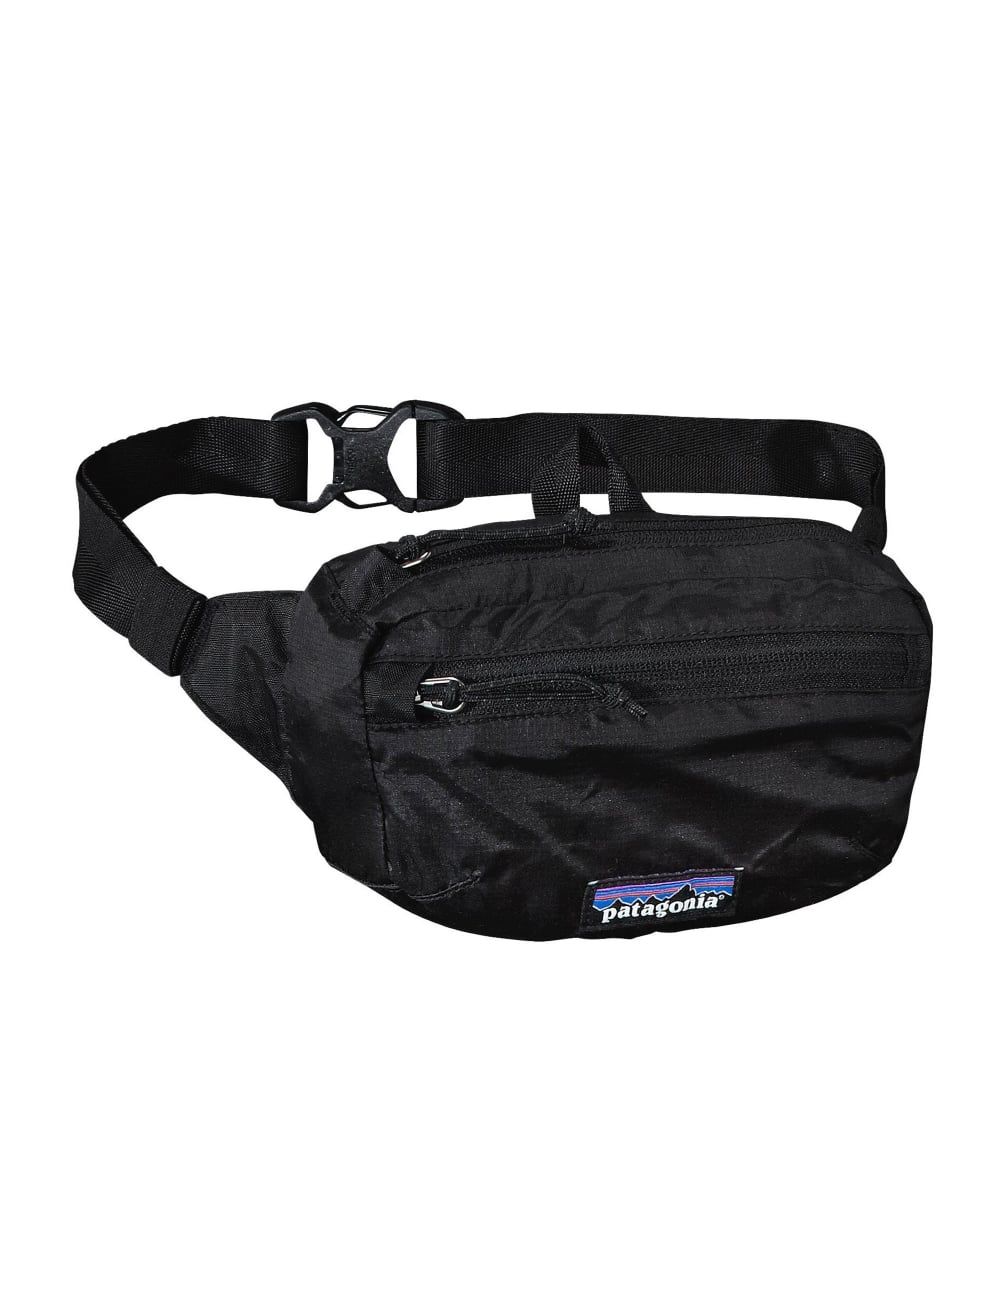 Patagonia Lightweight Travel Mini Hip Pack 1L - Black - Accessories ... 6c07e0d4d6405